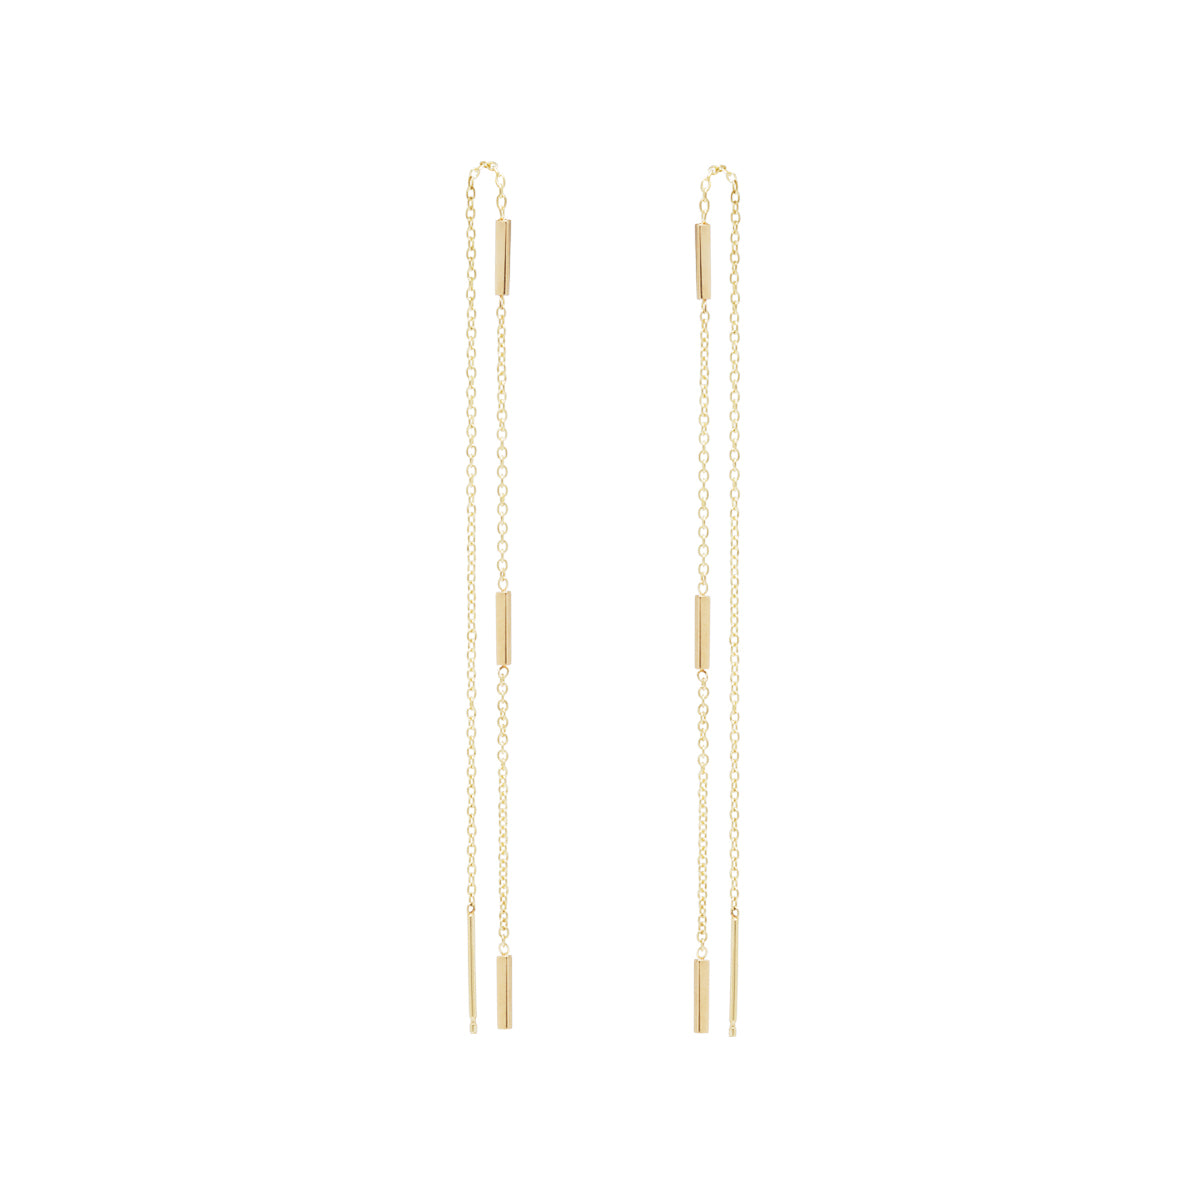 Zoë Chicco 14kt Yellow Gold 3 Tiny Bars Threader Earrings